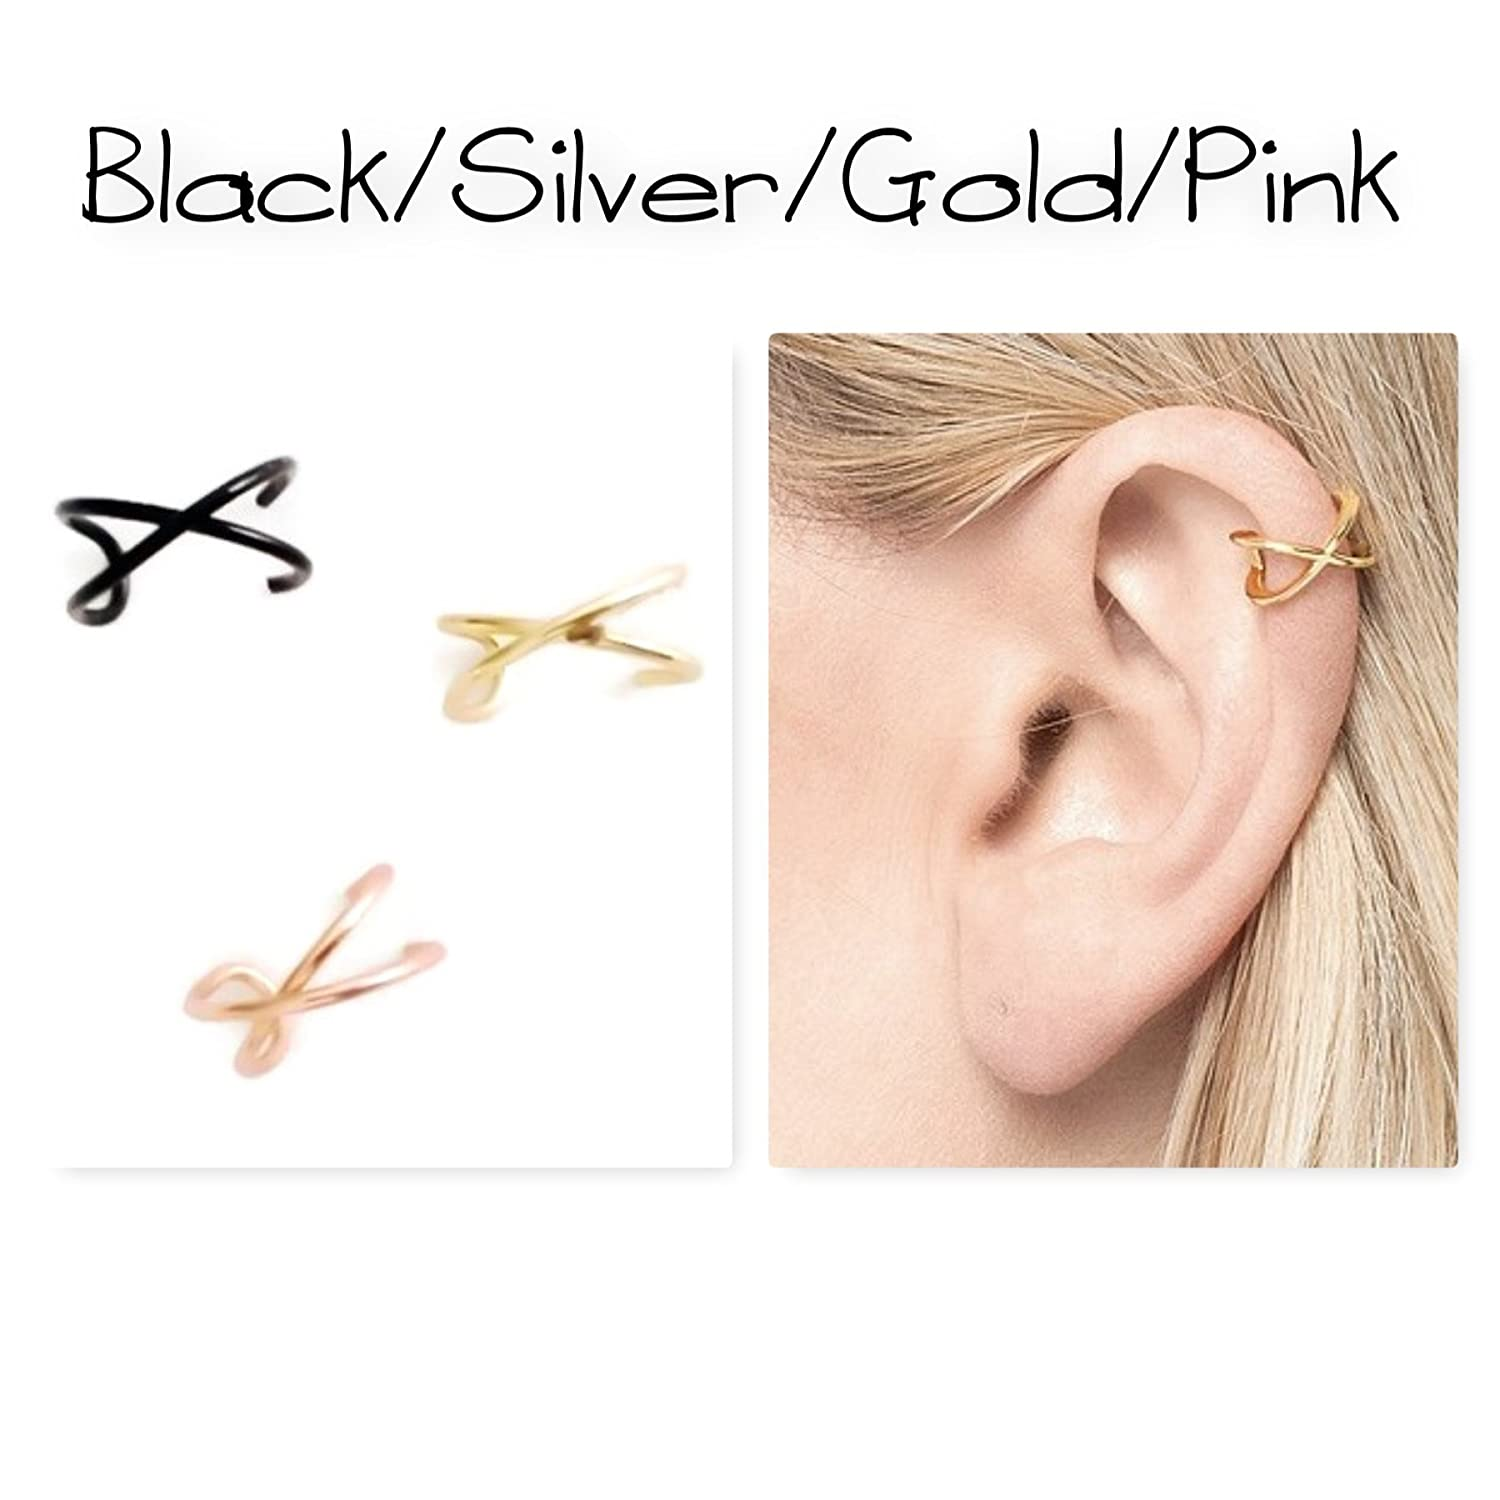 Criss Cross Ear Cuff X Cuff Earring Fake/Faux Cartilage Piercing Sterling Silver Rose/Yellow Gold Filled